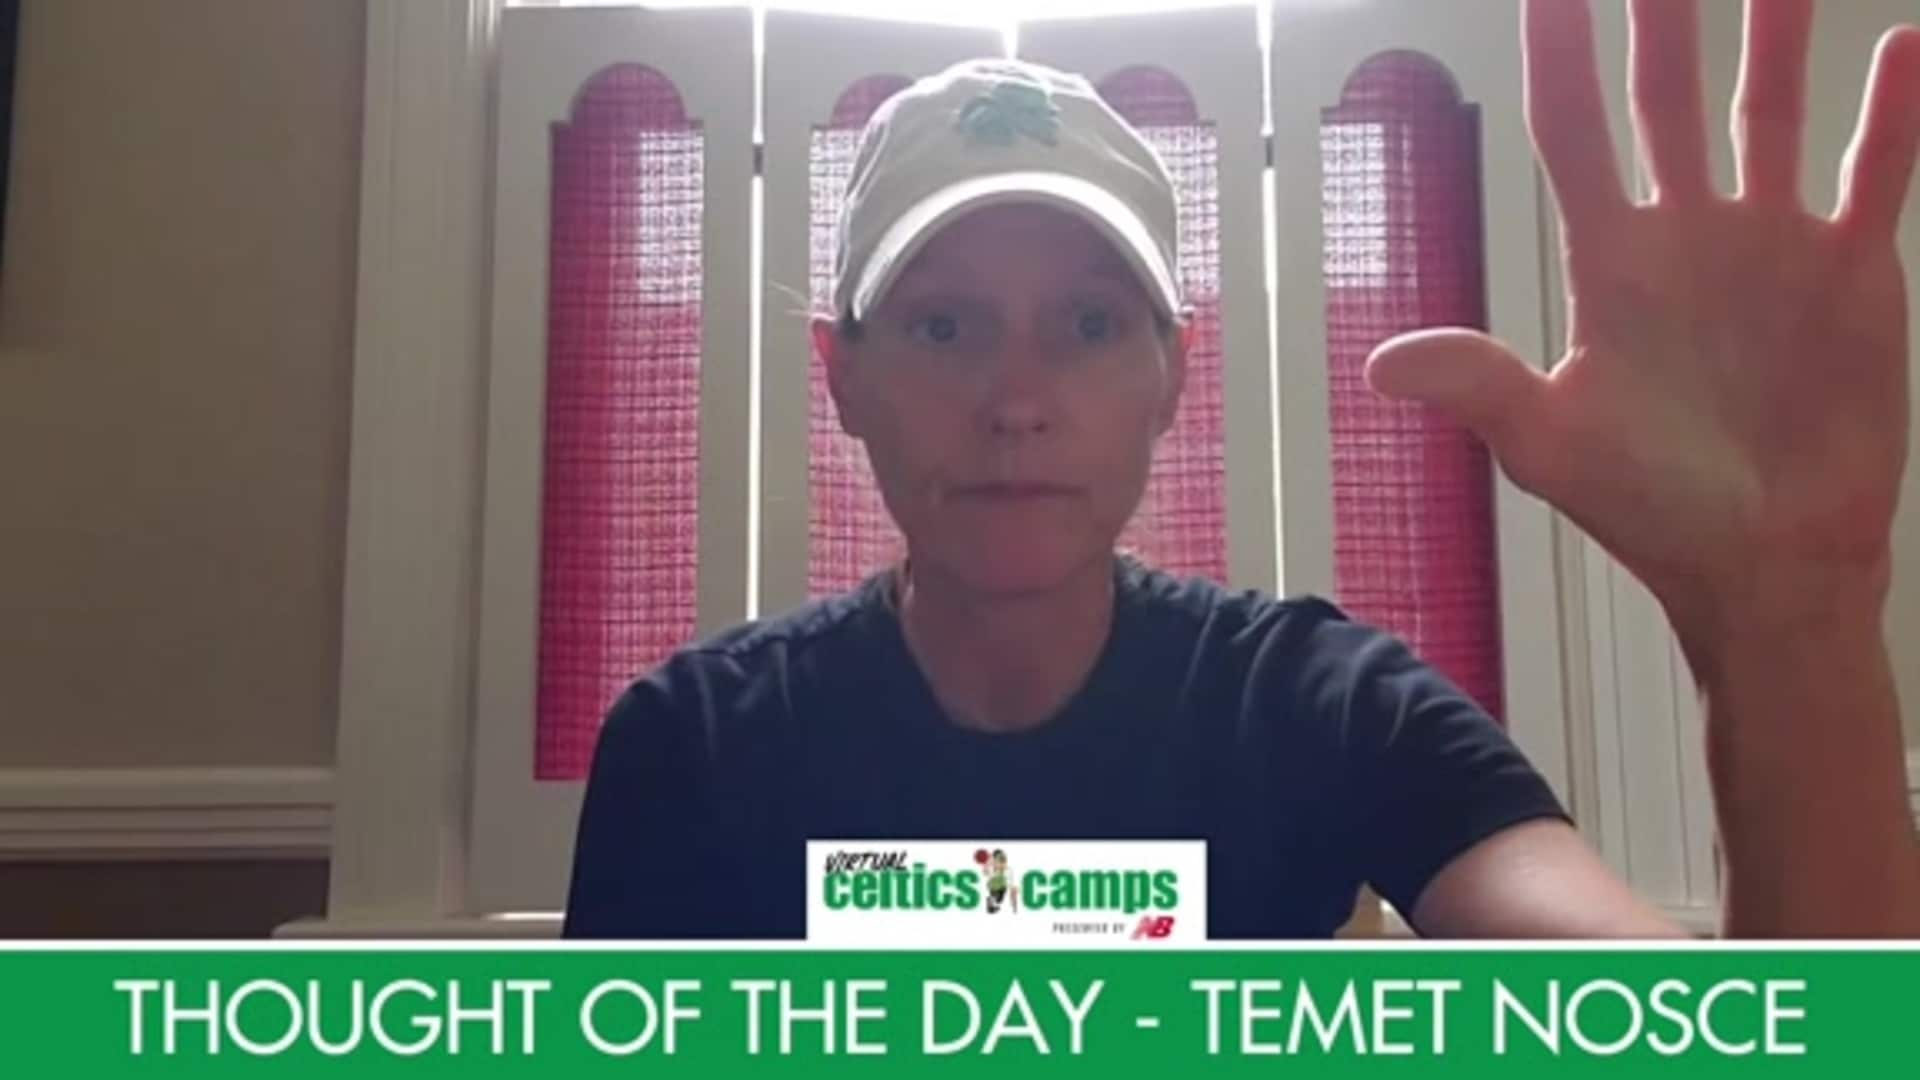 Virtual Celtics Camps - Thought of the Day Temet Nosce